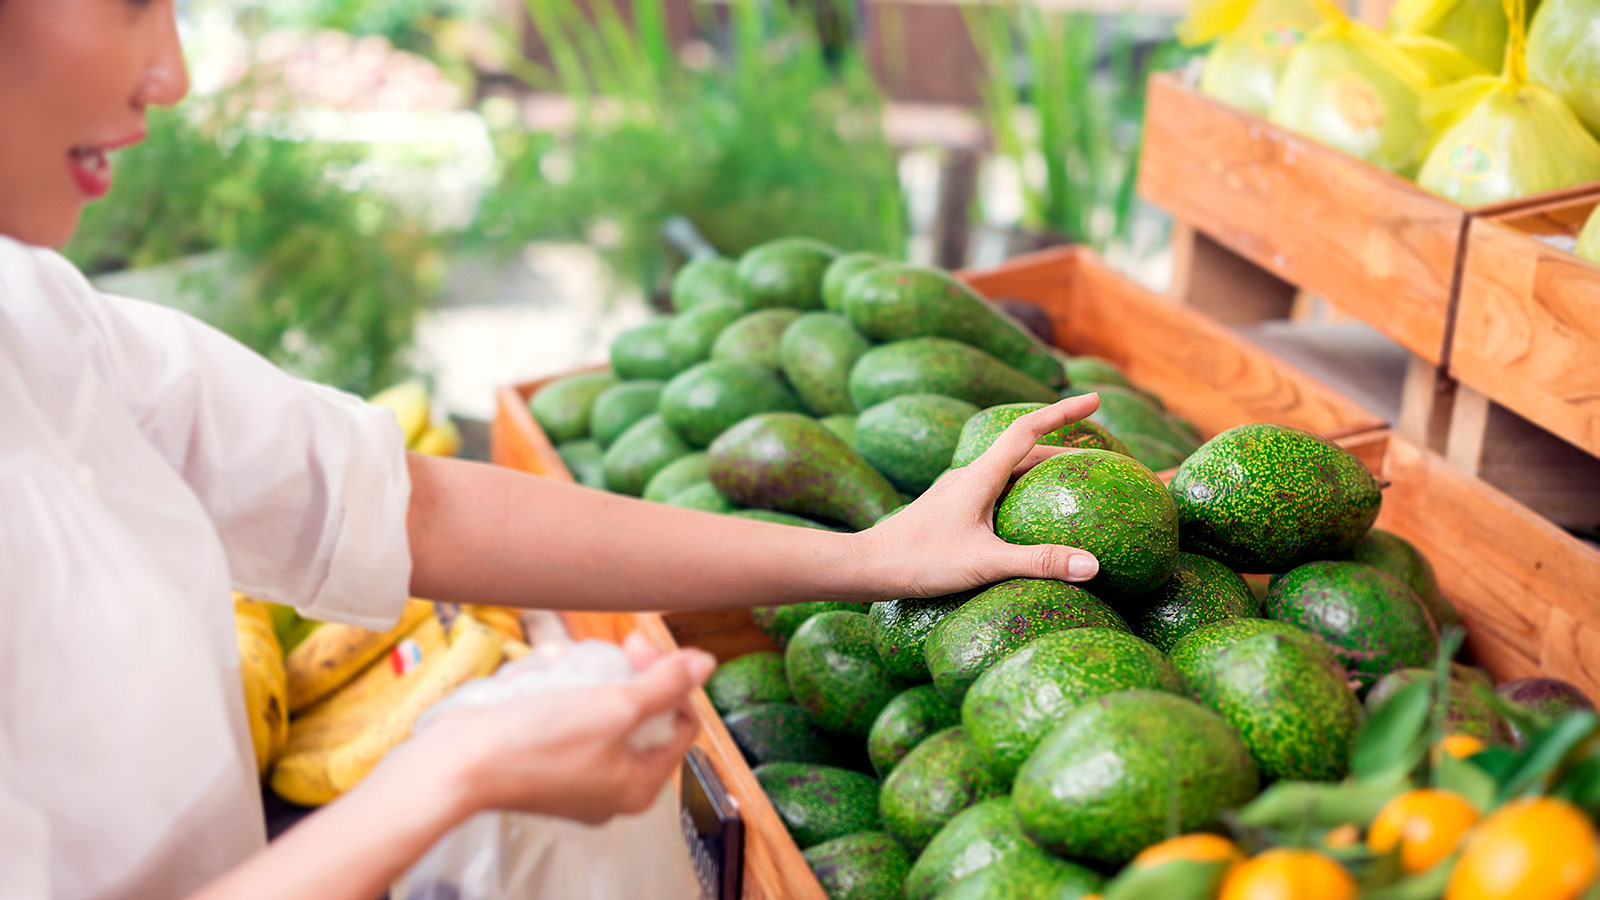 This generation is the healthiest (and the best at grocery shopping)